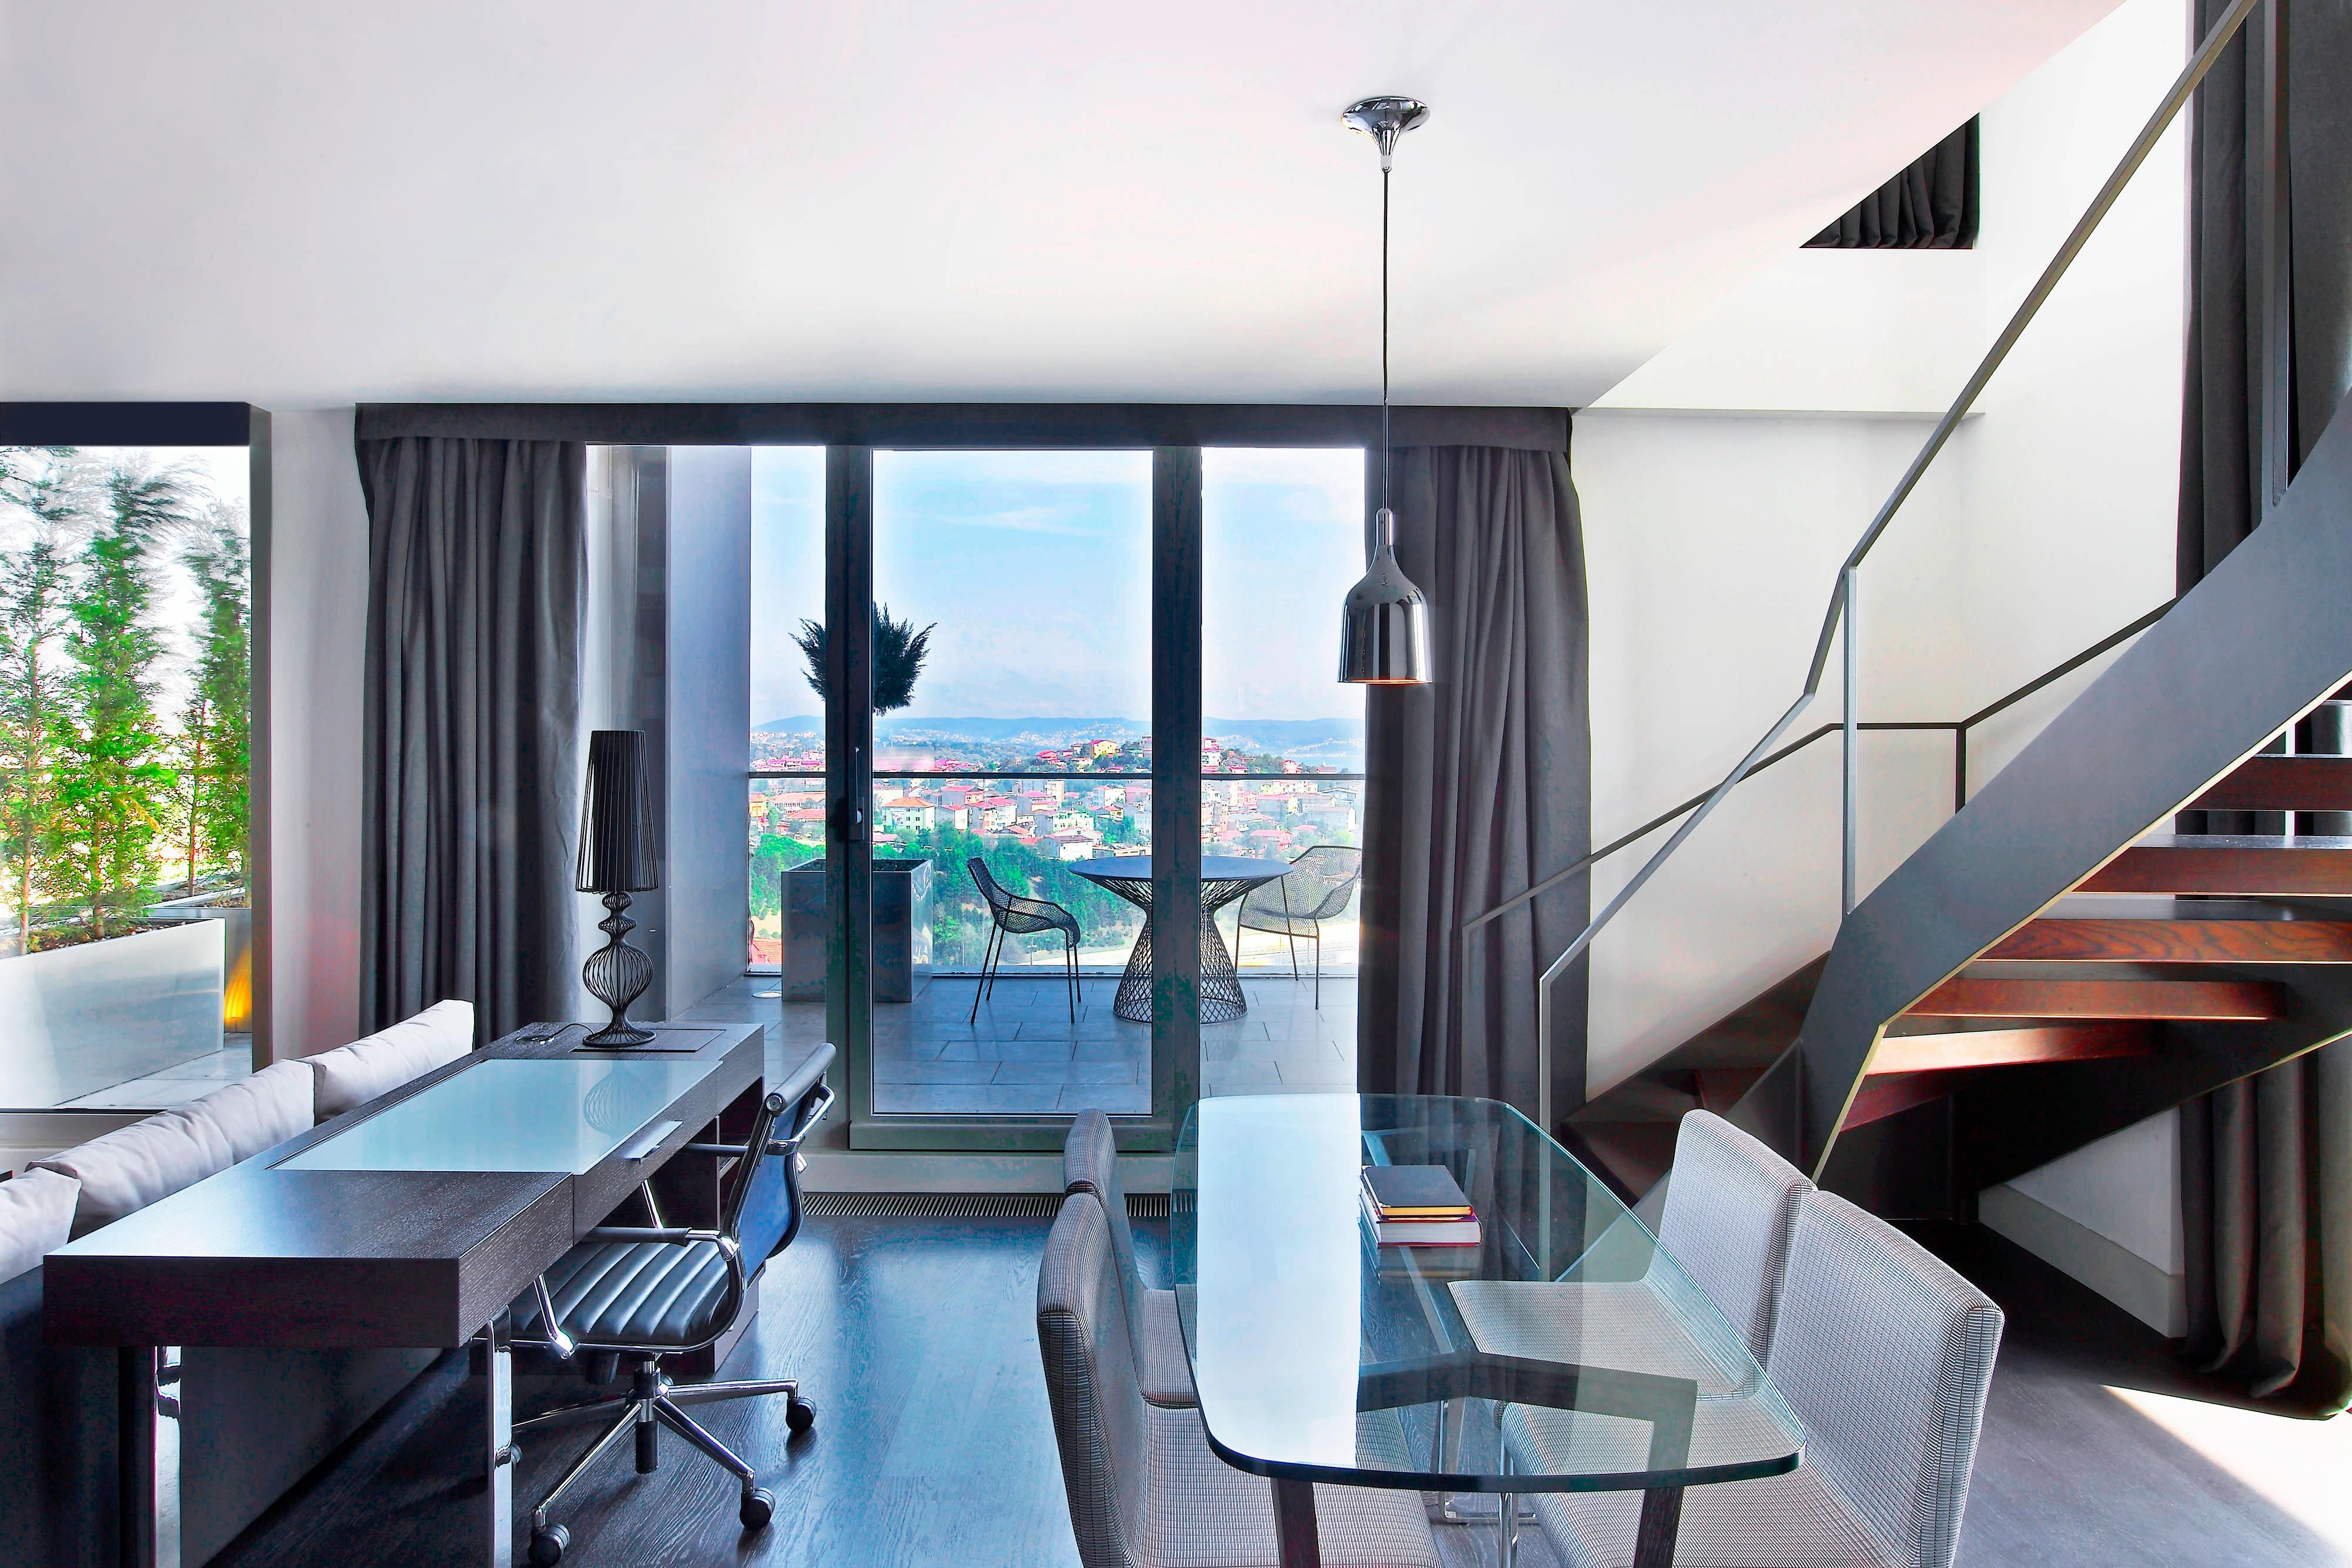 Loft Suite has a living and working area in its first floor